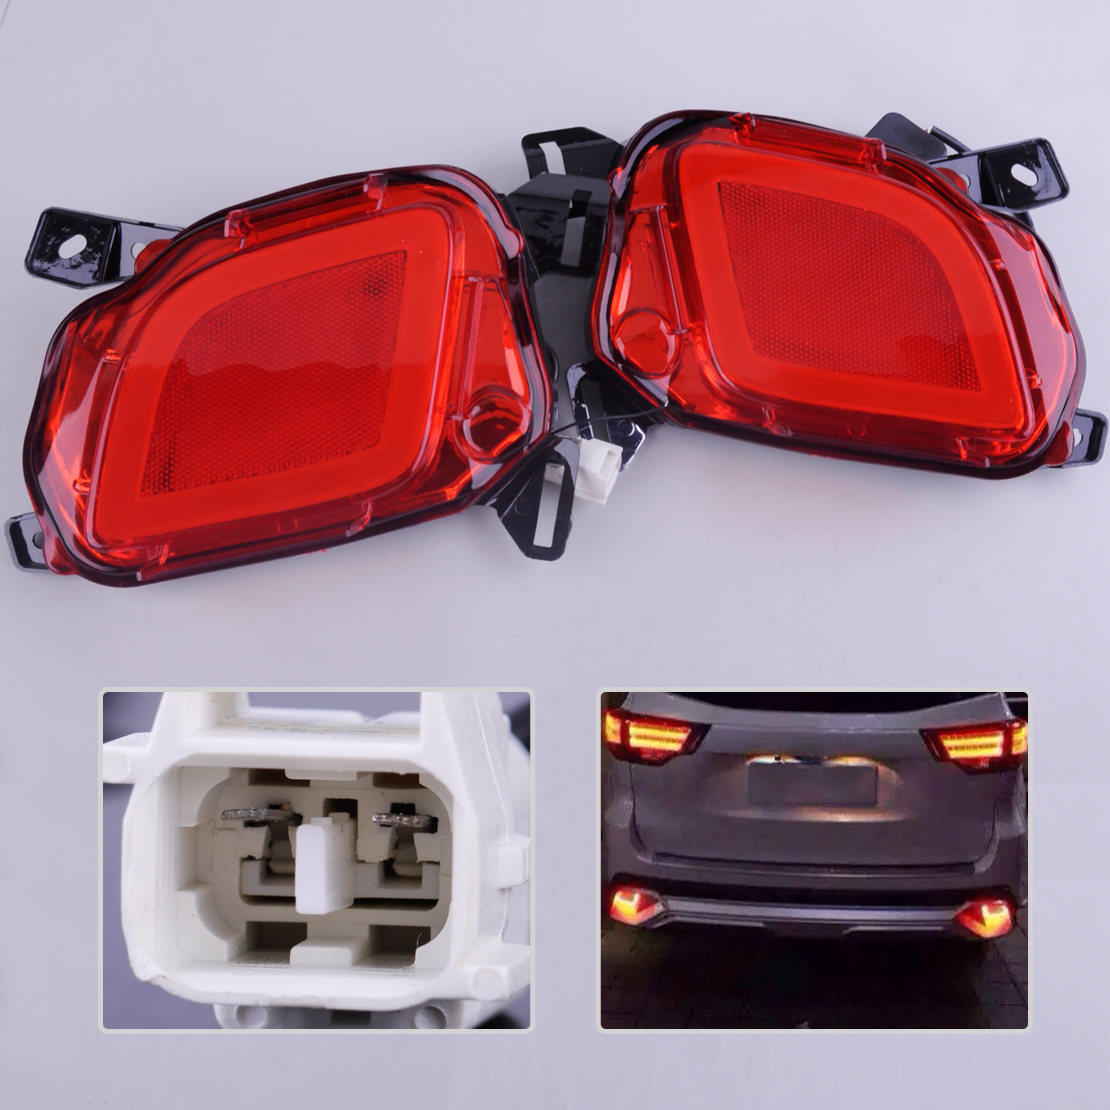 beler 2pcs LED Rear Bumper Brake Tail Lights Turn Signal Lamps Daytime Running Light Fit For Toyota Highlander 2015 2016 2017 led rear bumper warning lights car brake lamp cob running light led turn light for honda civic 2016 one pair